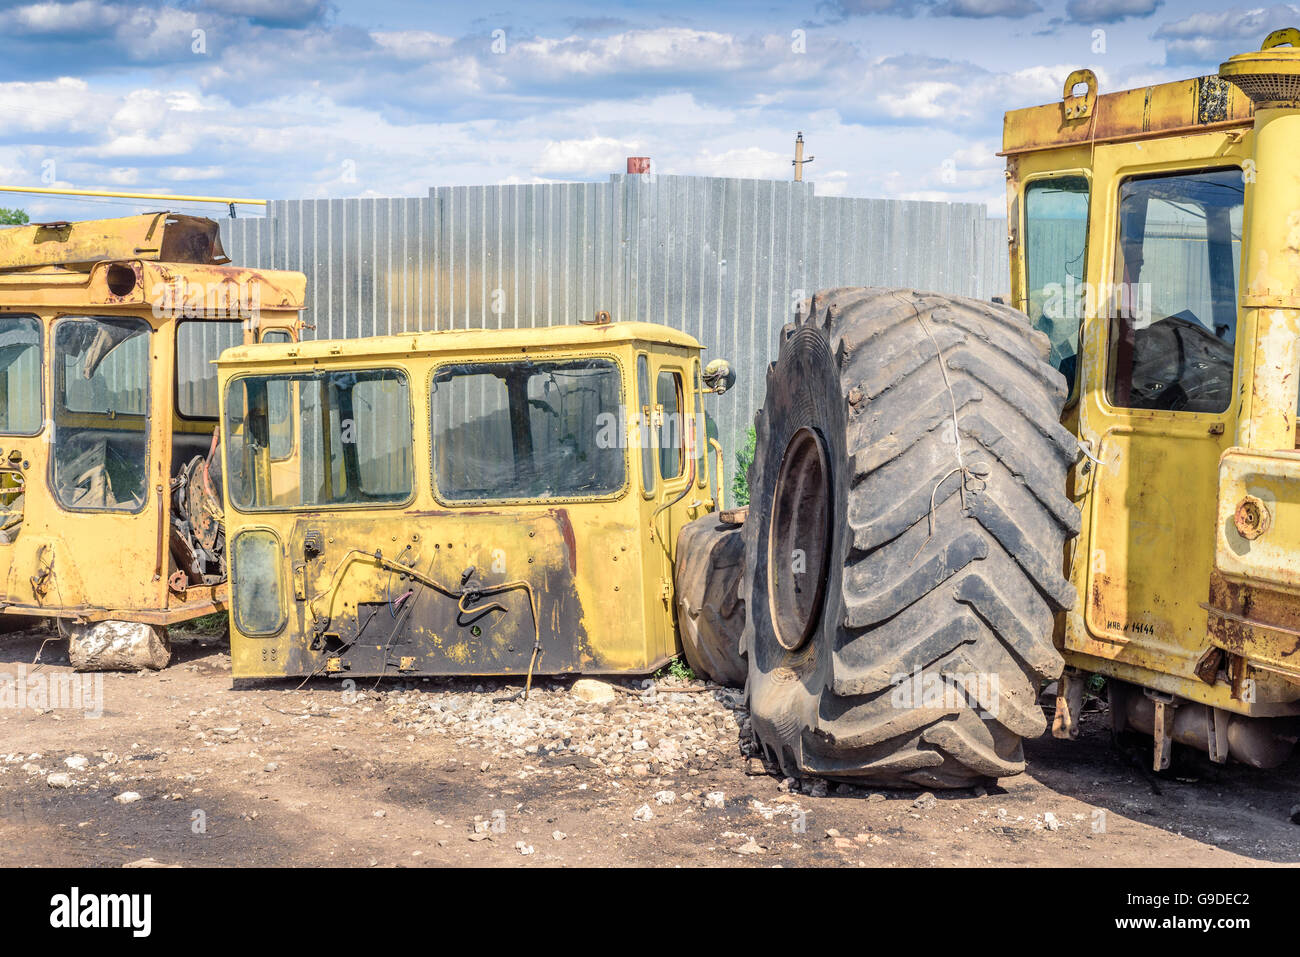 Broken and salvaged large yellow industrial machine cabins at a scrap breakers yard in non-working condition. - Stock Image